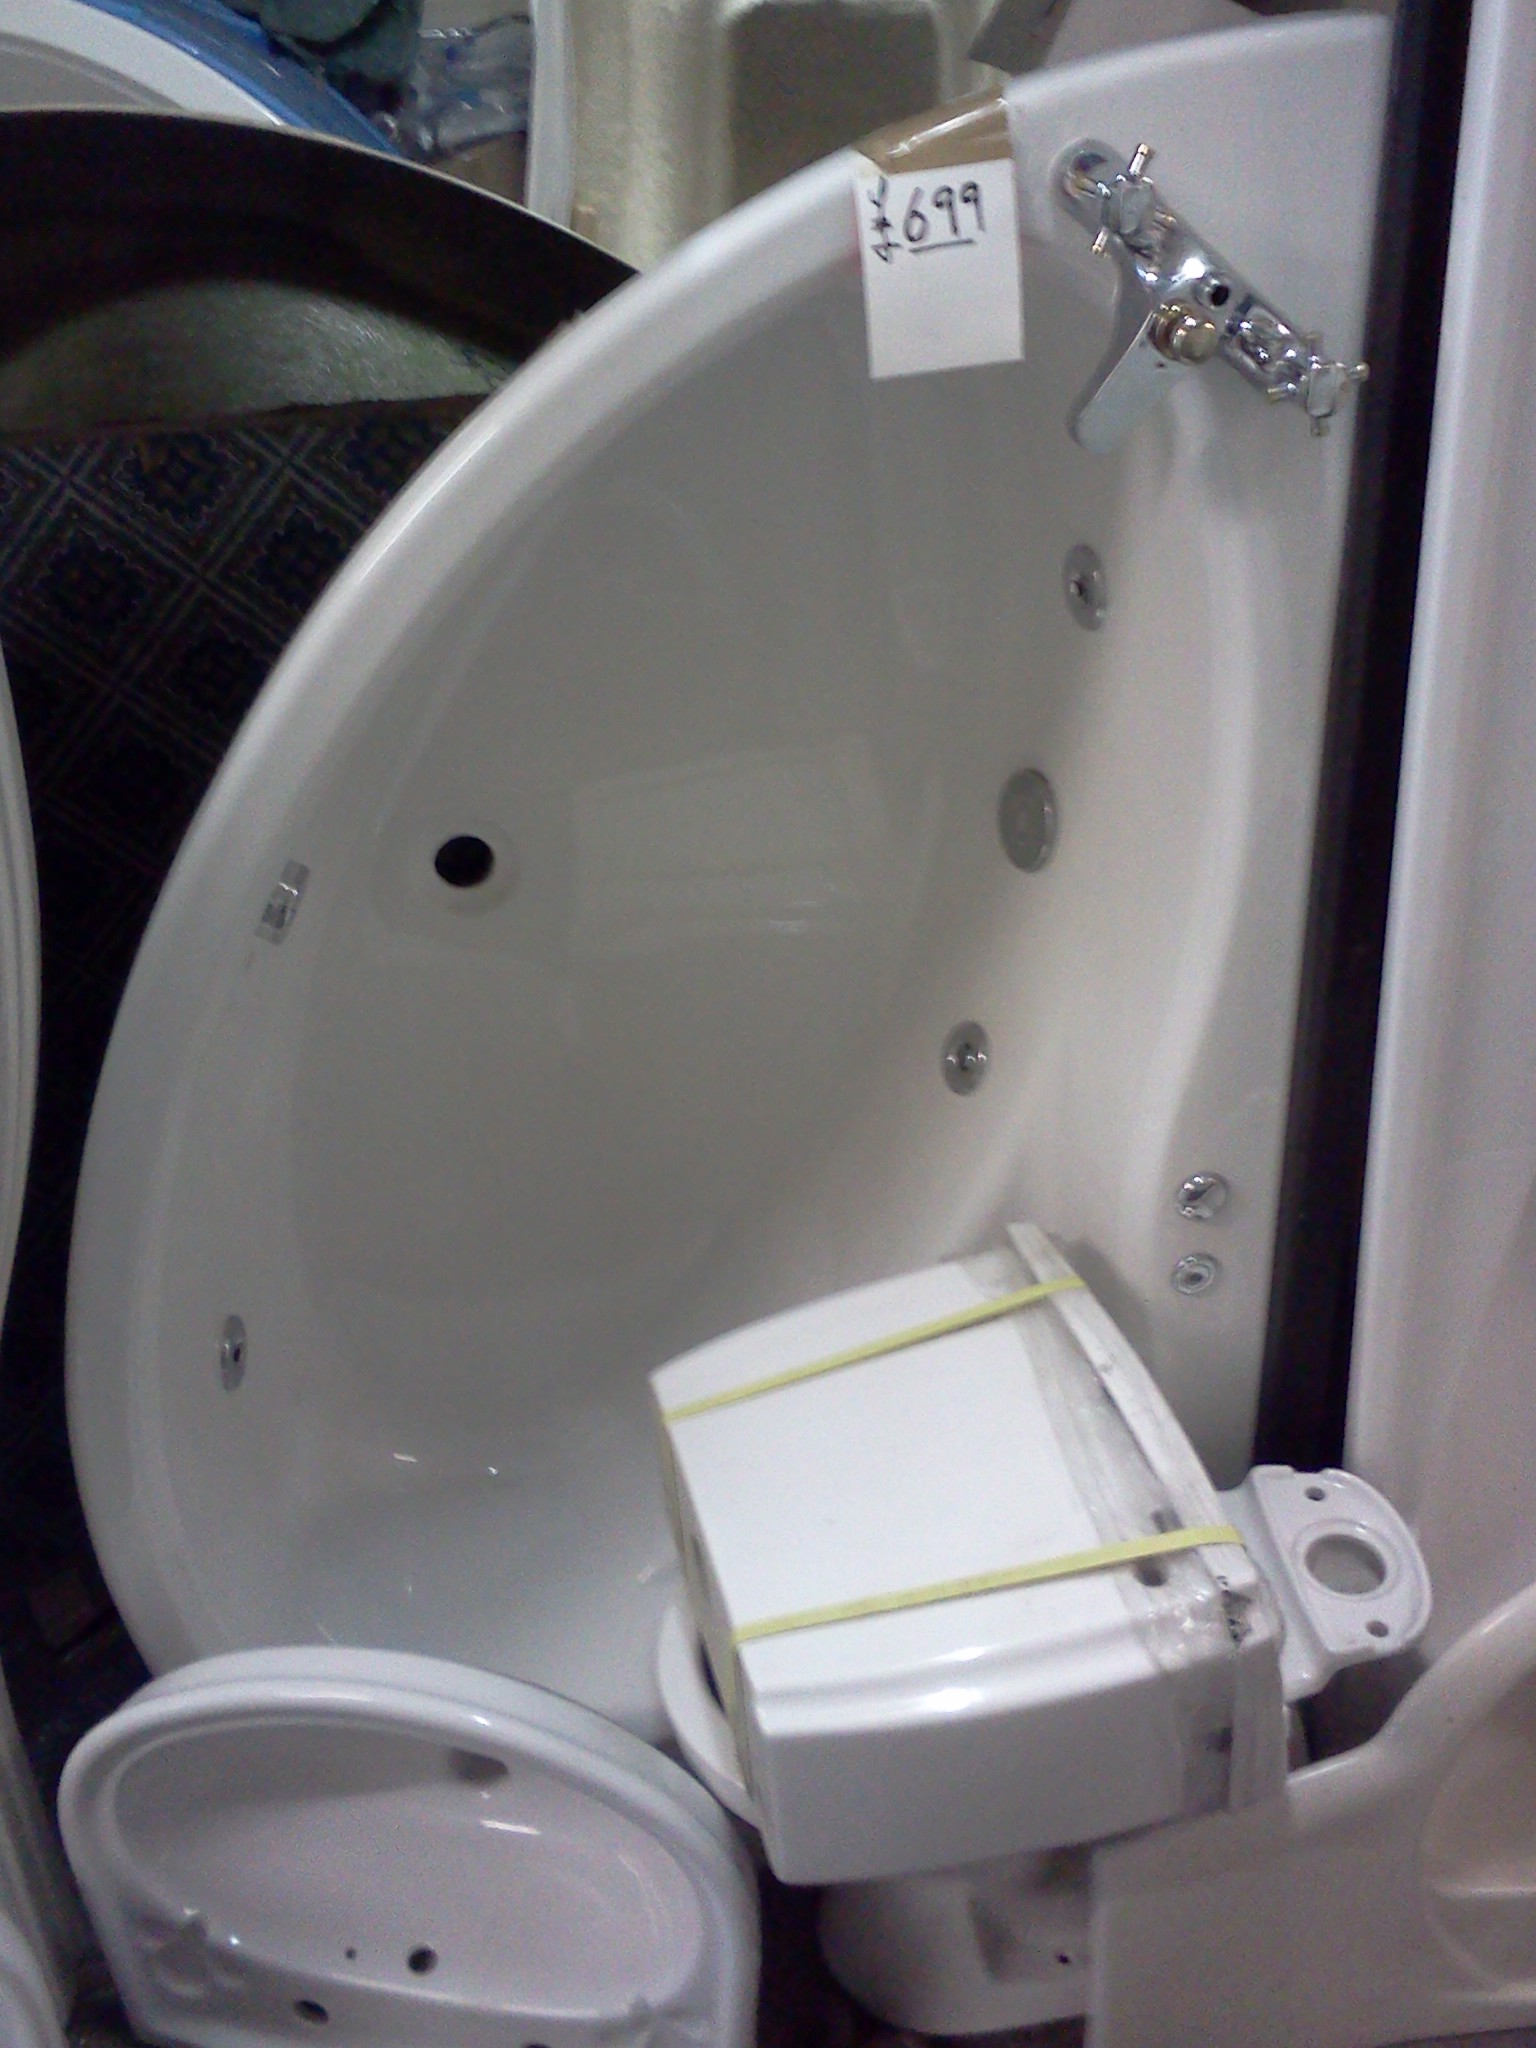 Low Price Whirlpool Baths In Stock 6jet 8jet